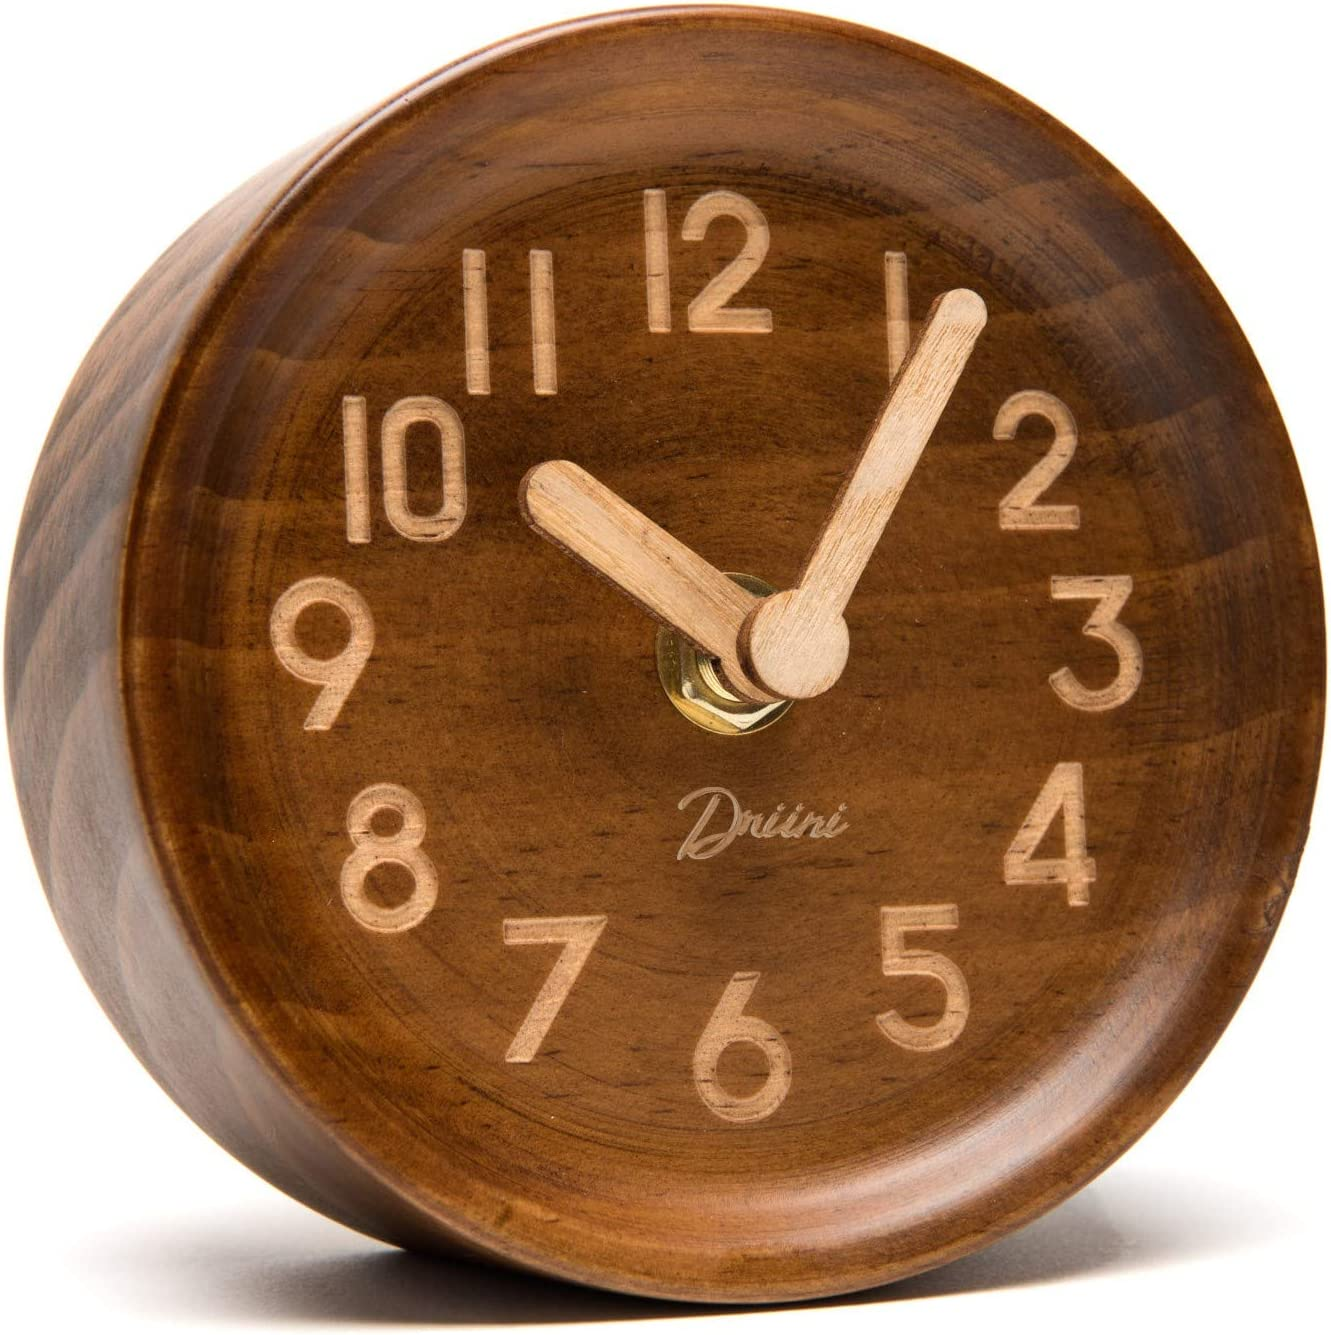 A picture of Driini Wooden Desk & Table Analog Clock Epy Huts Modern Simple Wall Clock